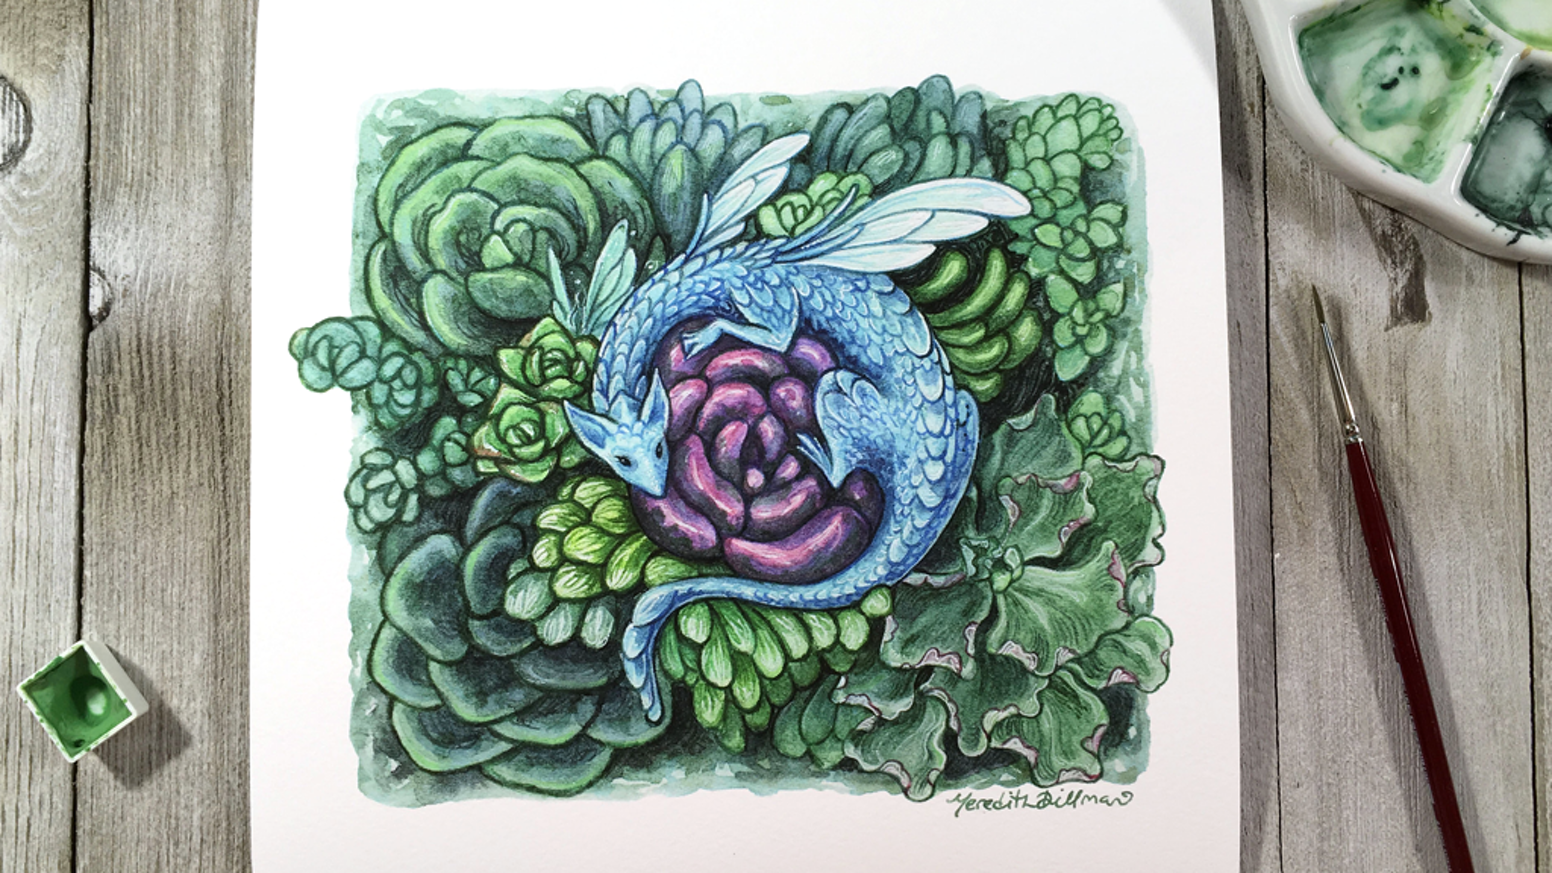 Limited edition giclee prints from fantasy and fairy artist Meredith Dillman